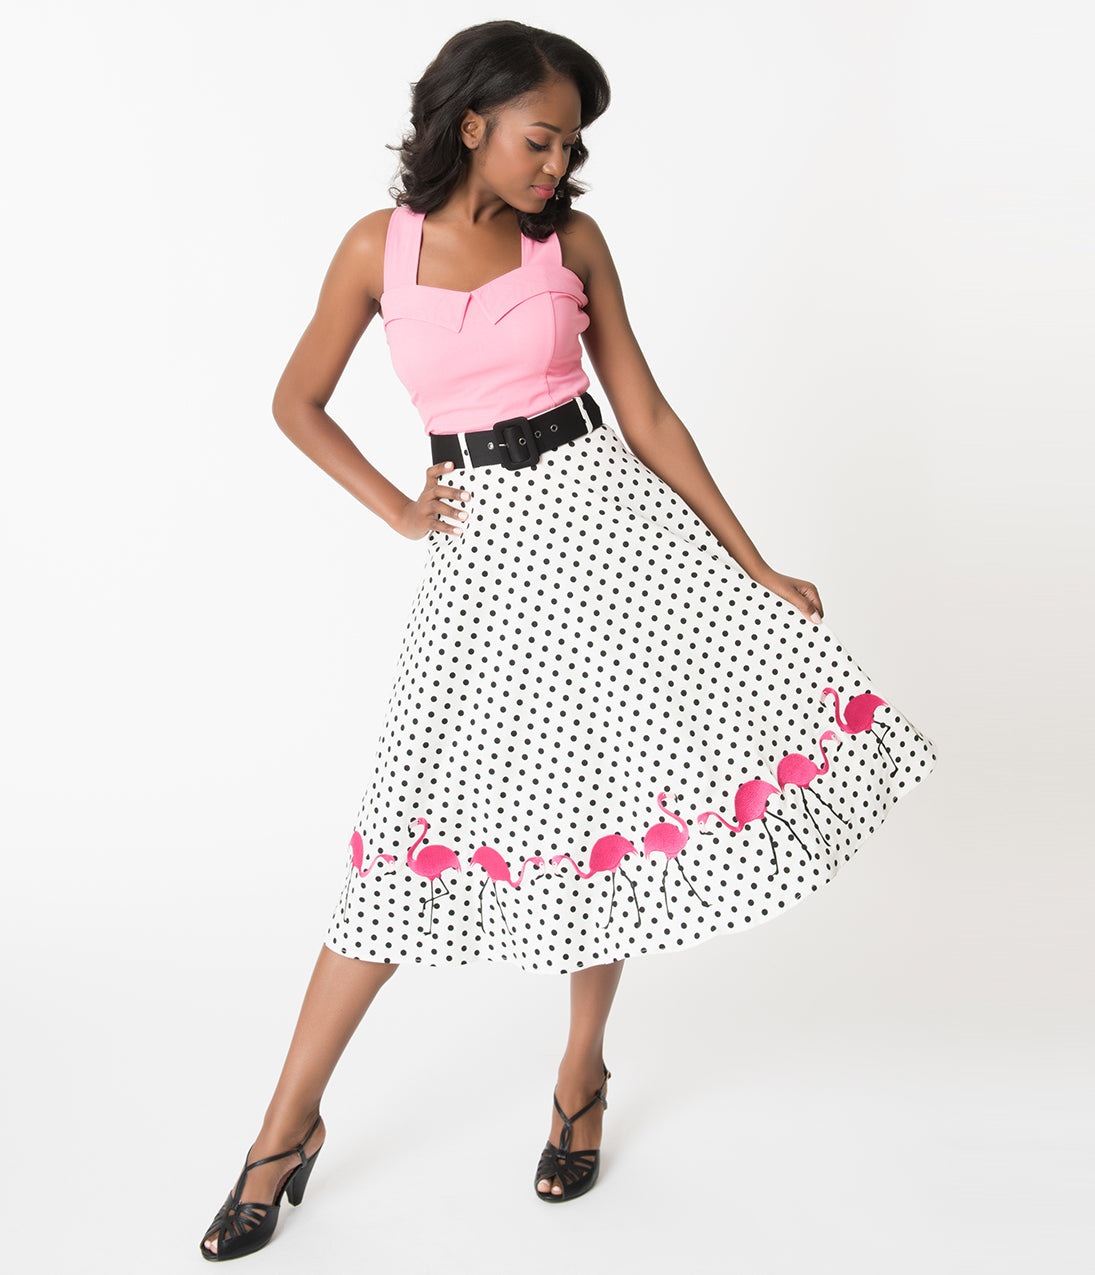 What Did Women Wear in the 1950s? Collectif White  Black Polka Dot Fancy Flamingo Cotton Swing Skirt $68.00 AT vintagedancer.com